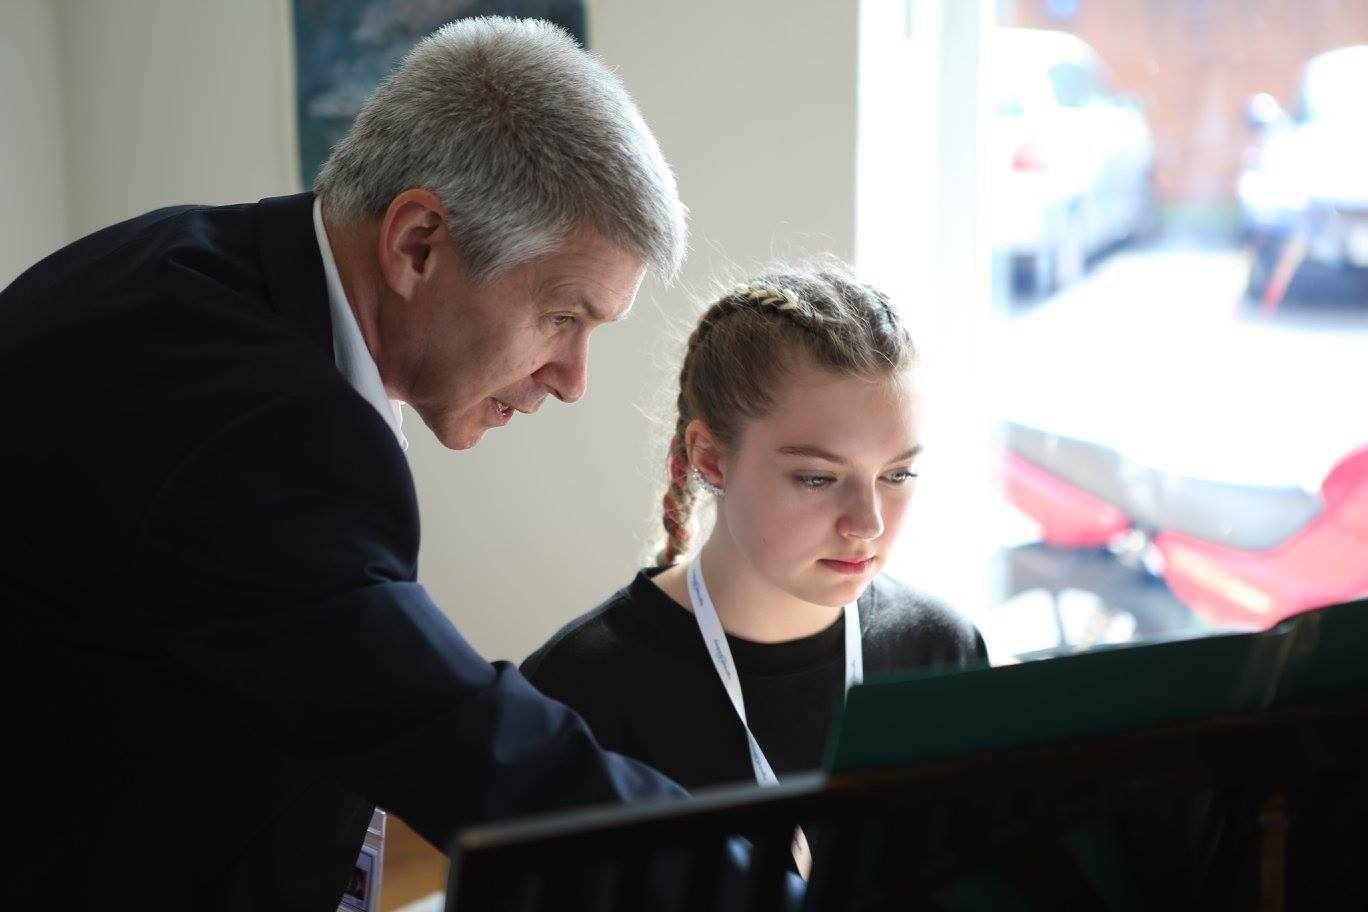 Piano lessons with Richard Sisson